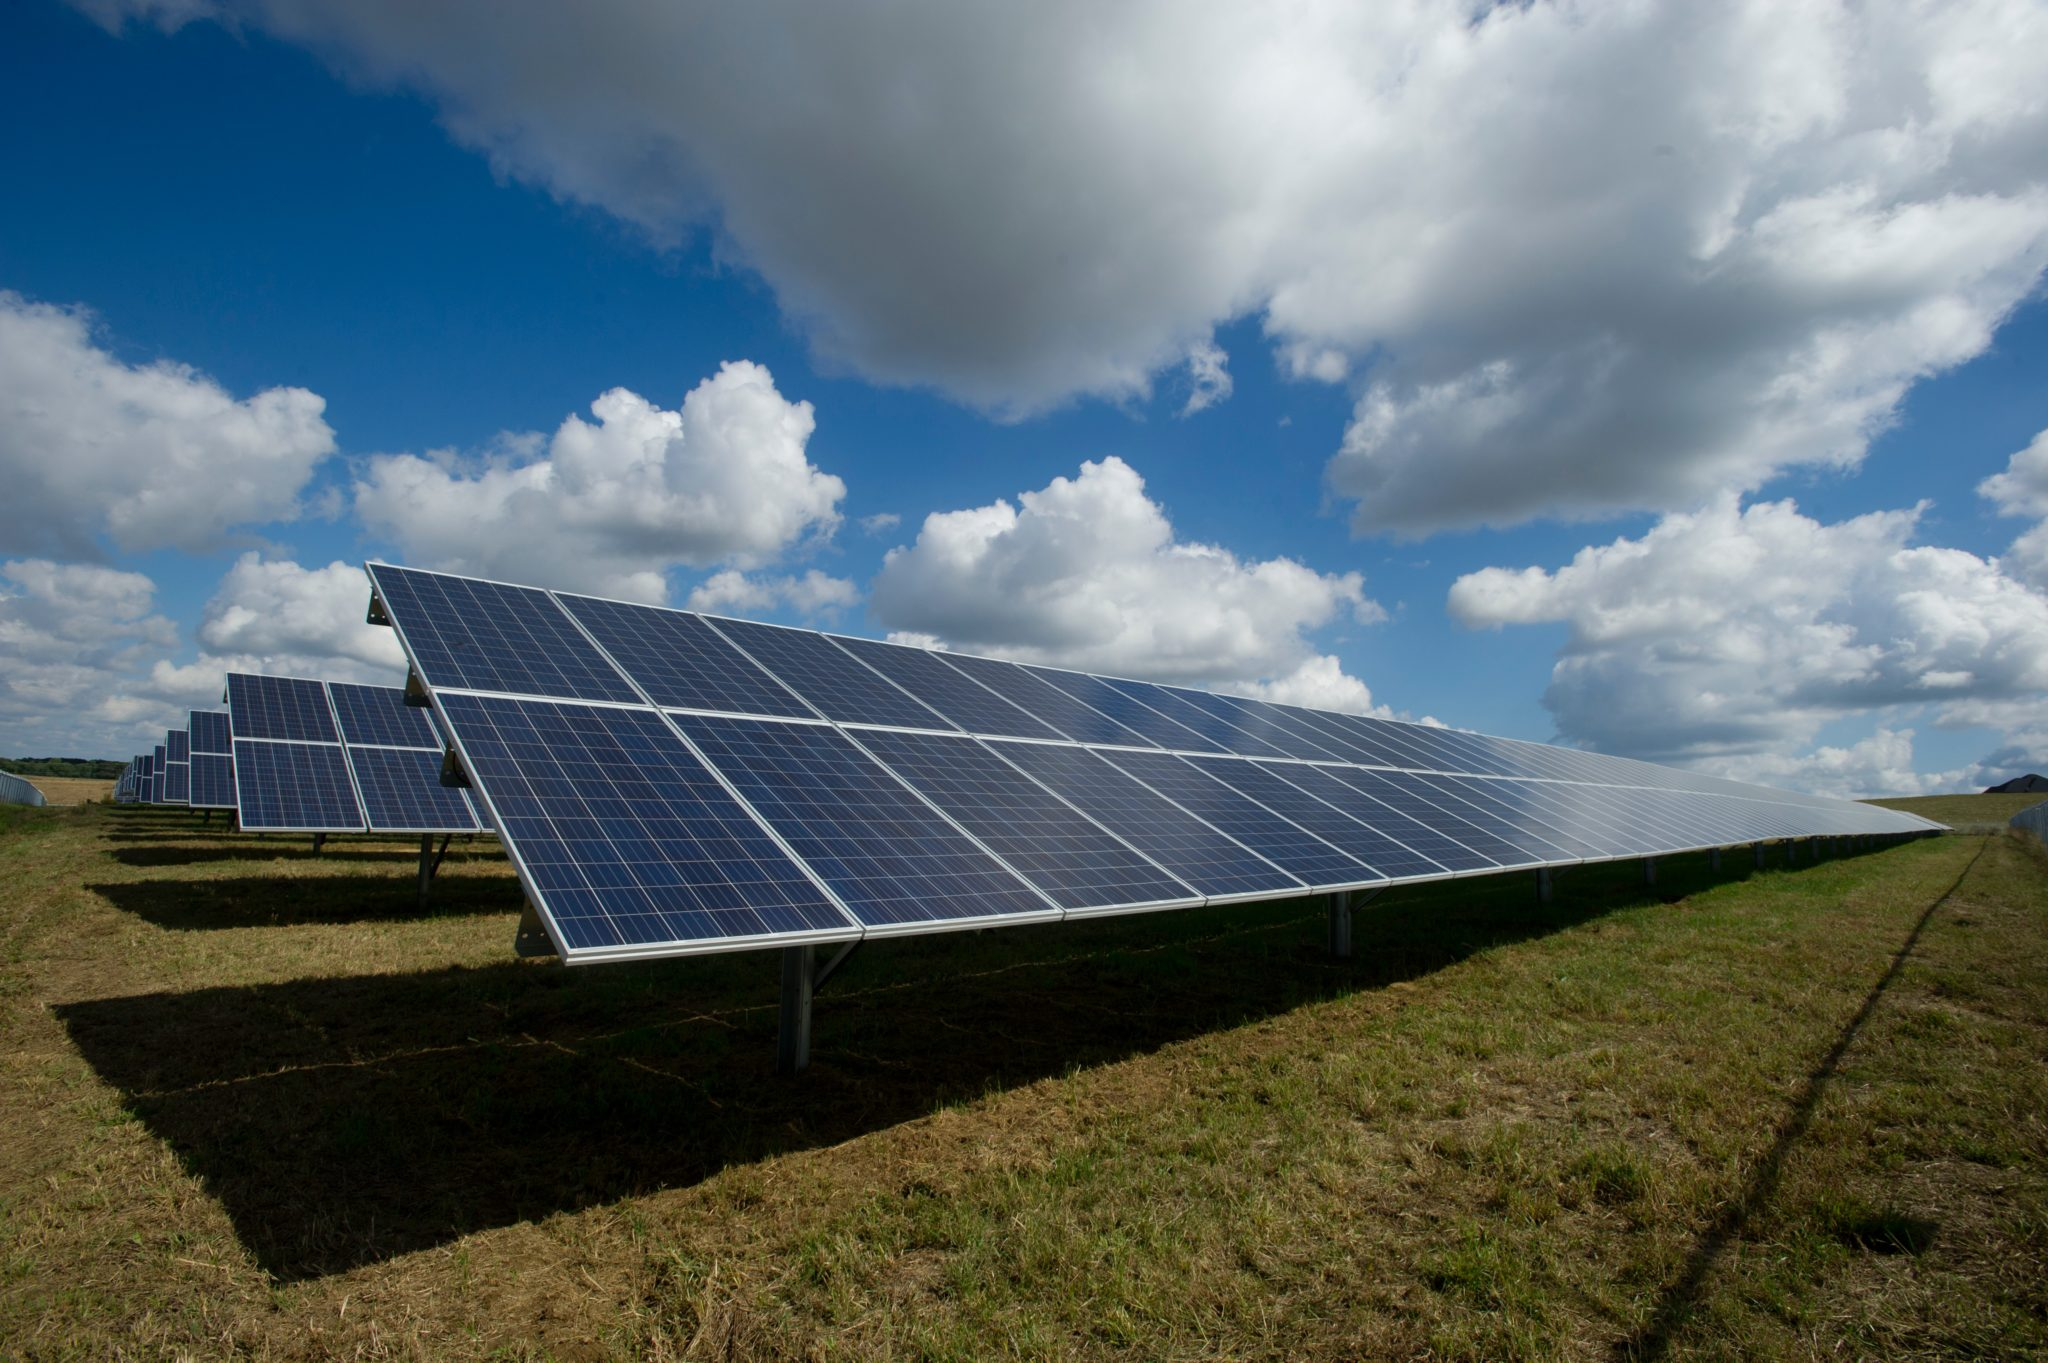 Clouds gather over solar panels thumbnail